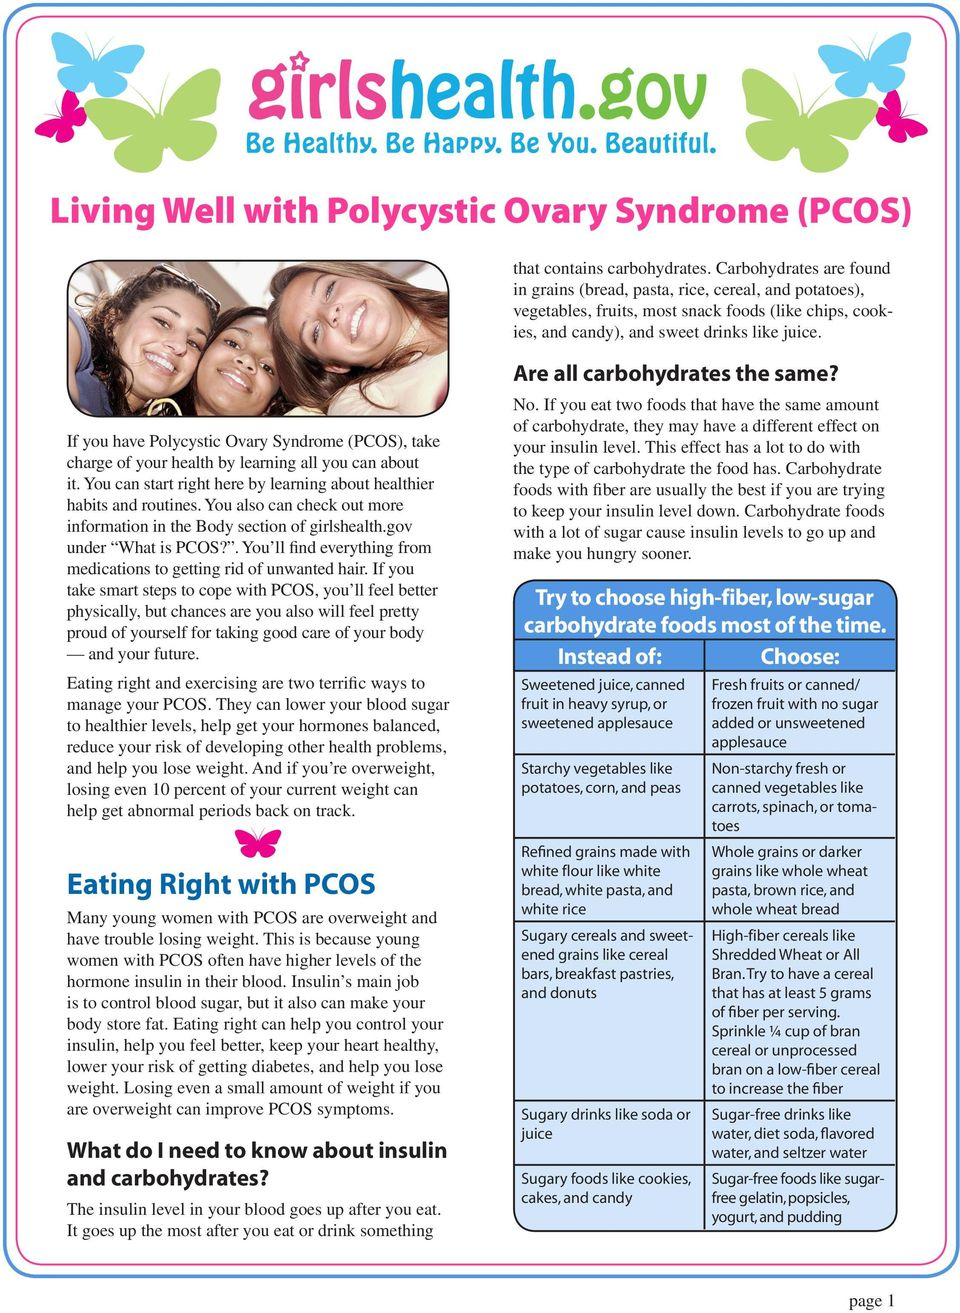 If you have Polycystic Ovary Syndrome (PCOS), take charge of your health by learning all you can about it. You can start right here by learning about healthier habits and routines.